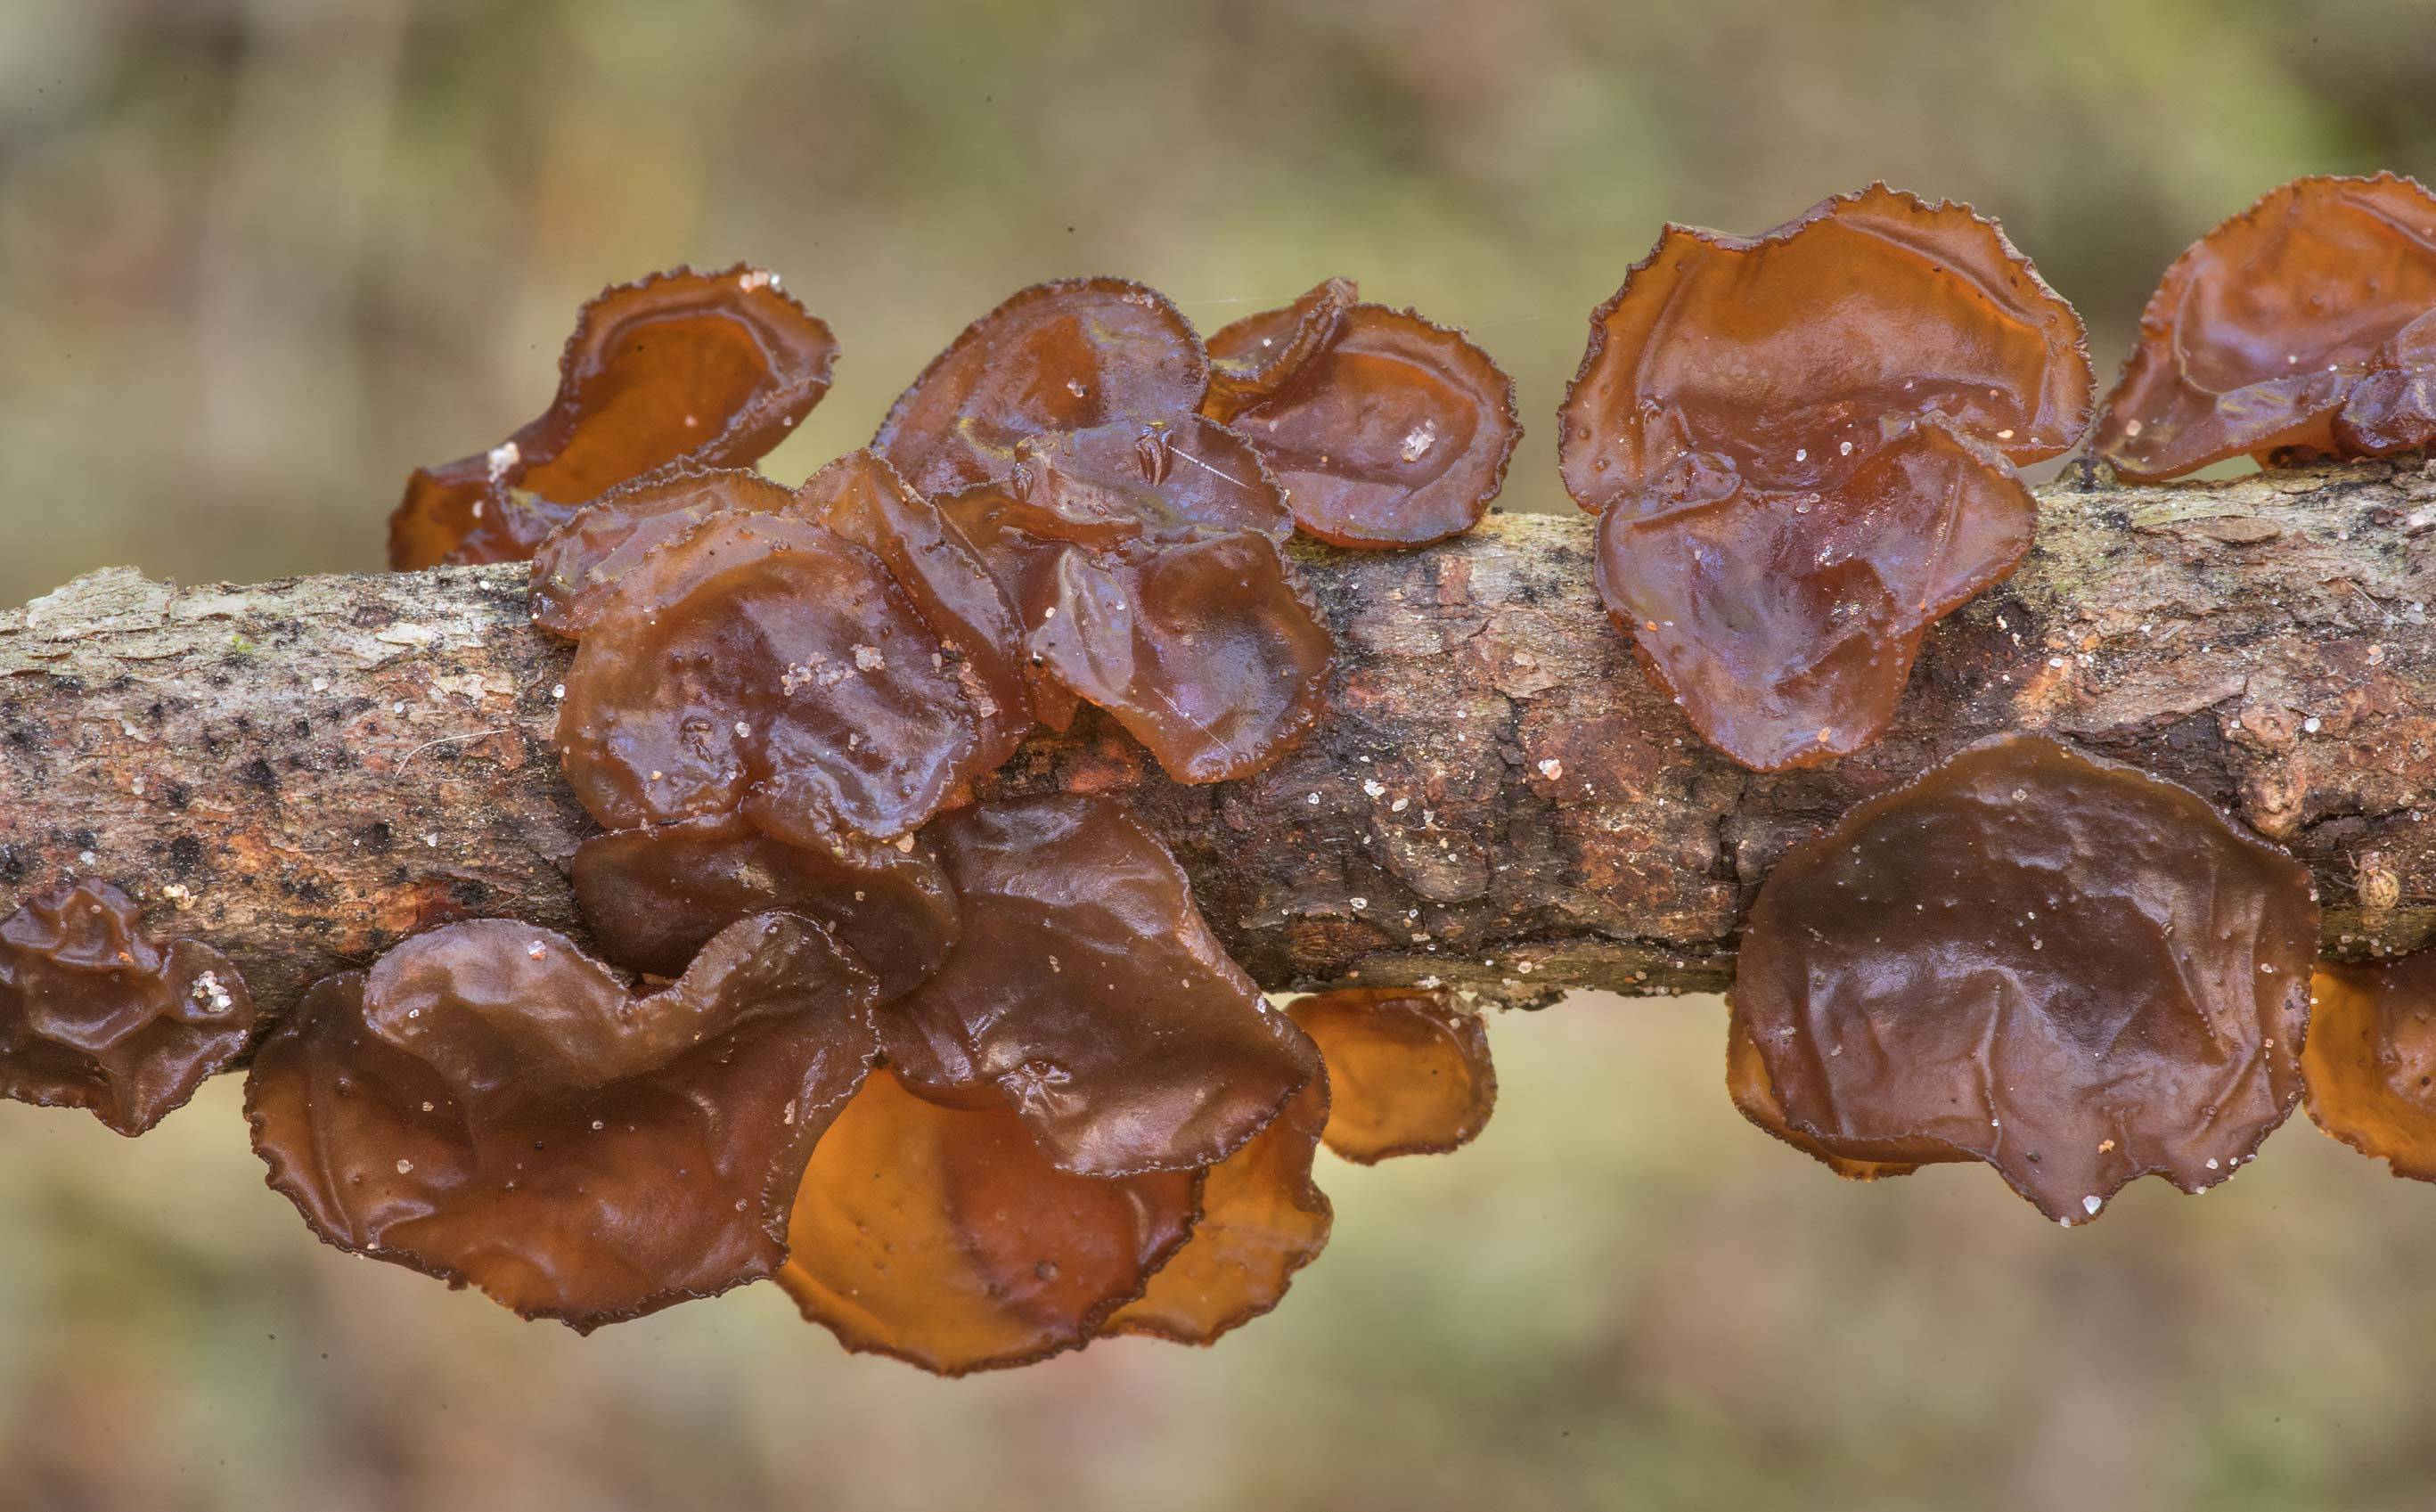 Amber jelly roll fungus Exidia crenata (Exidia...Forest north from Monrgomery. Texas